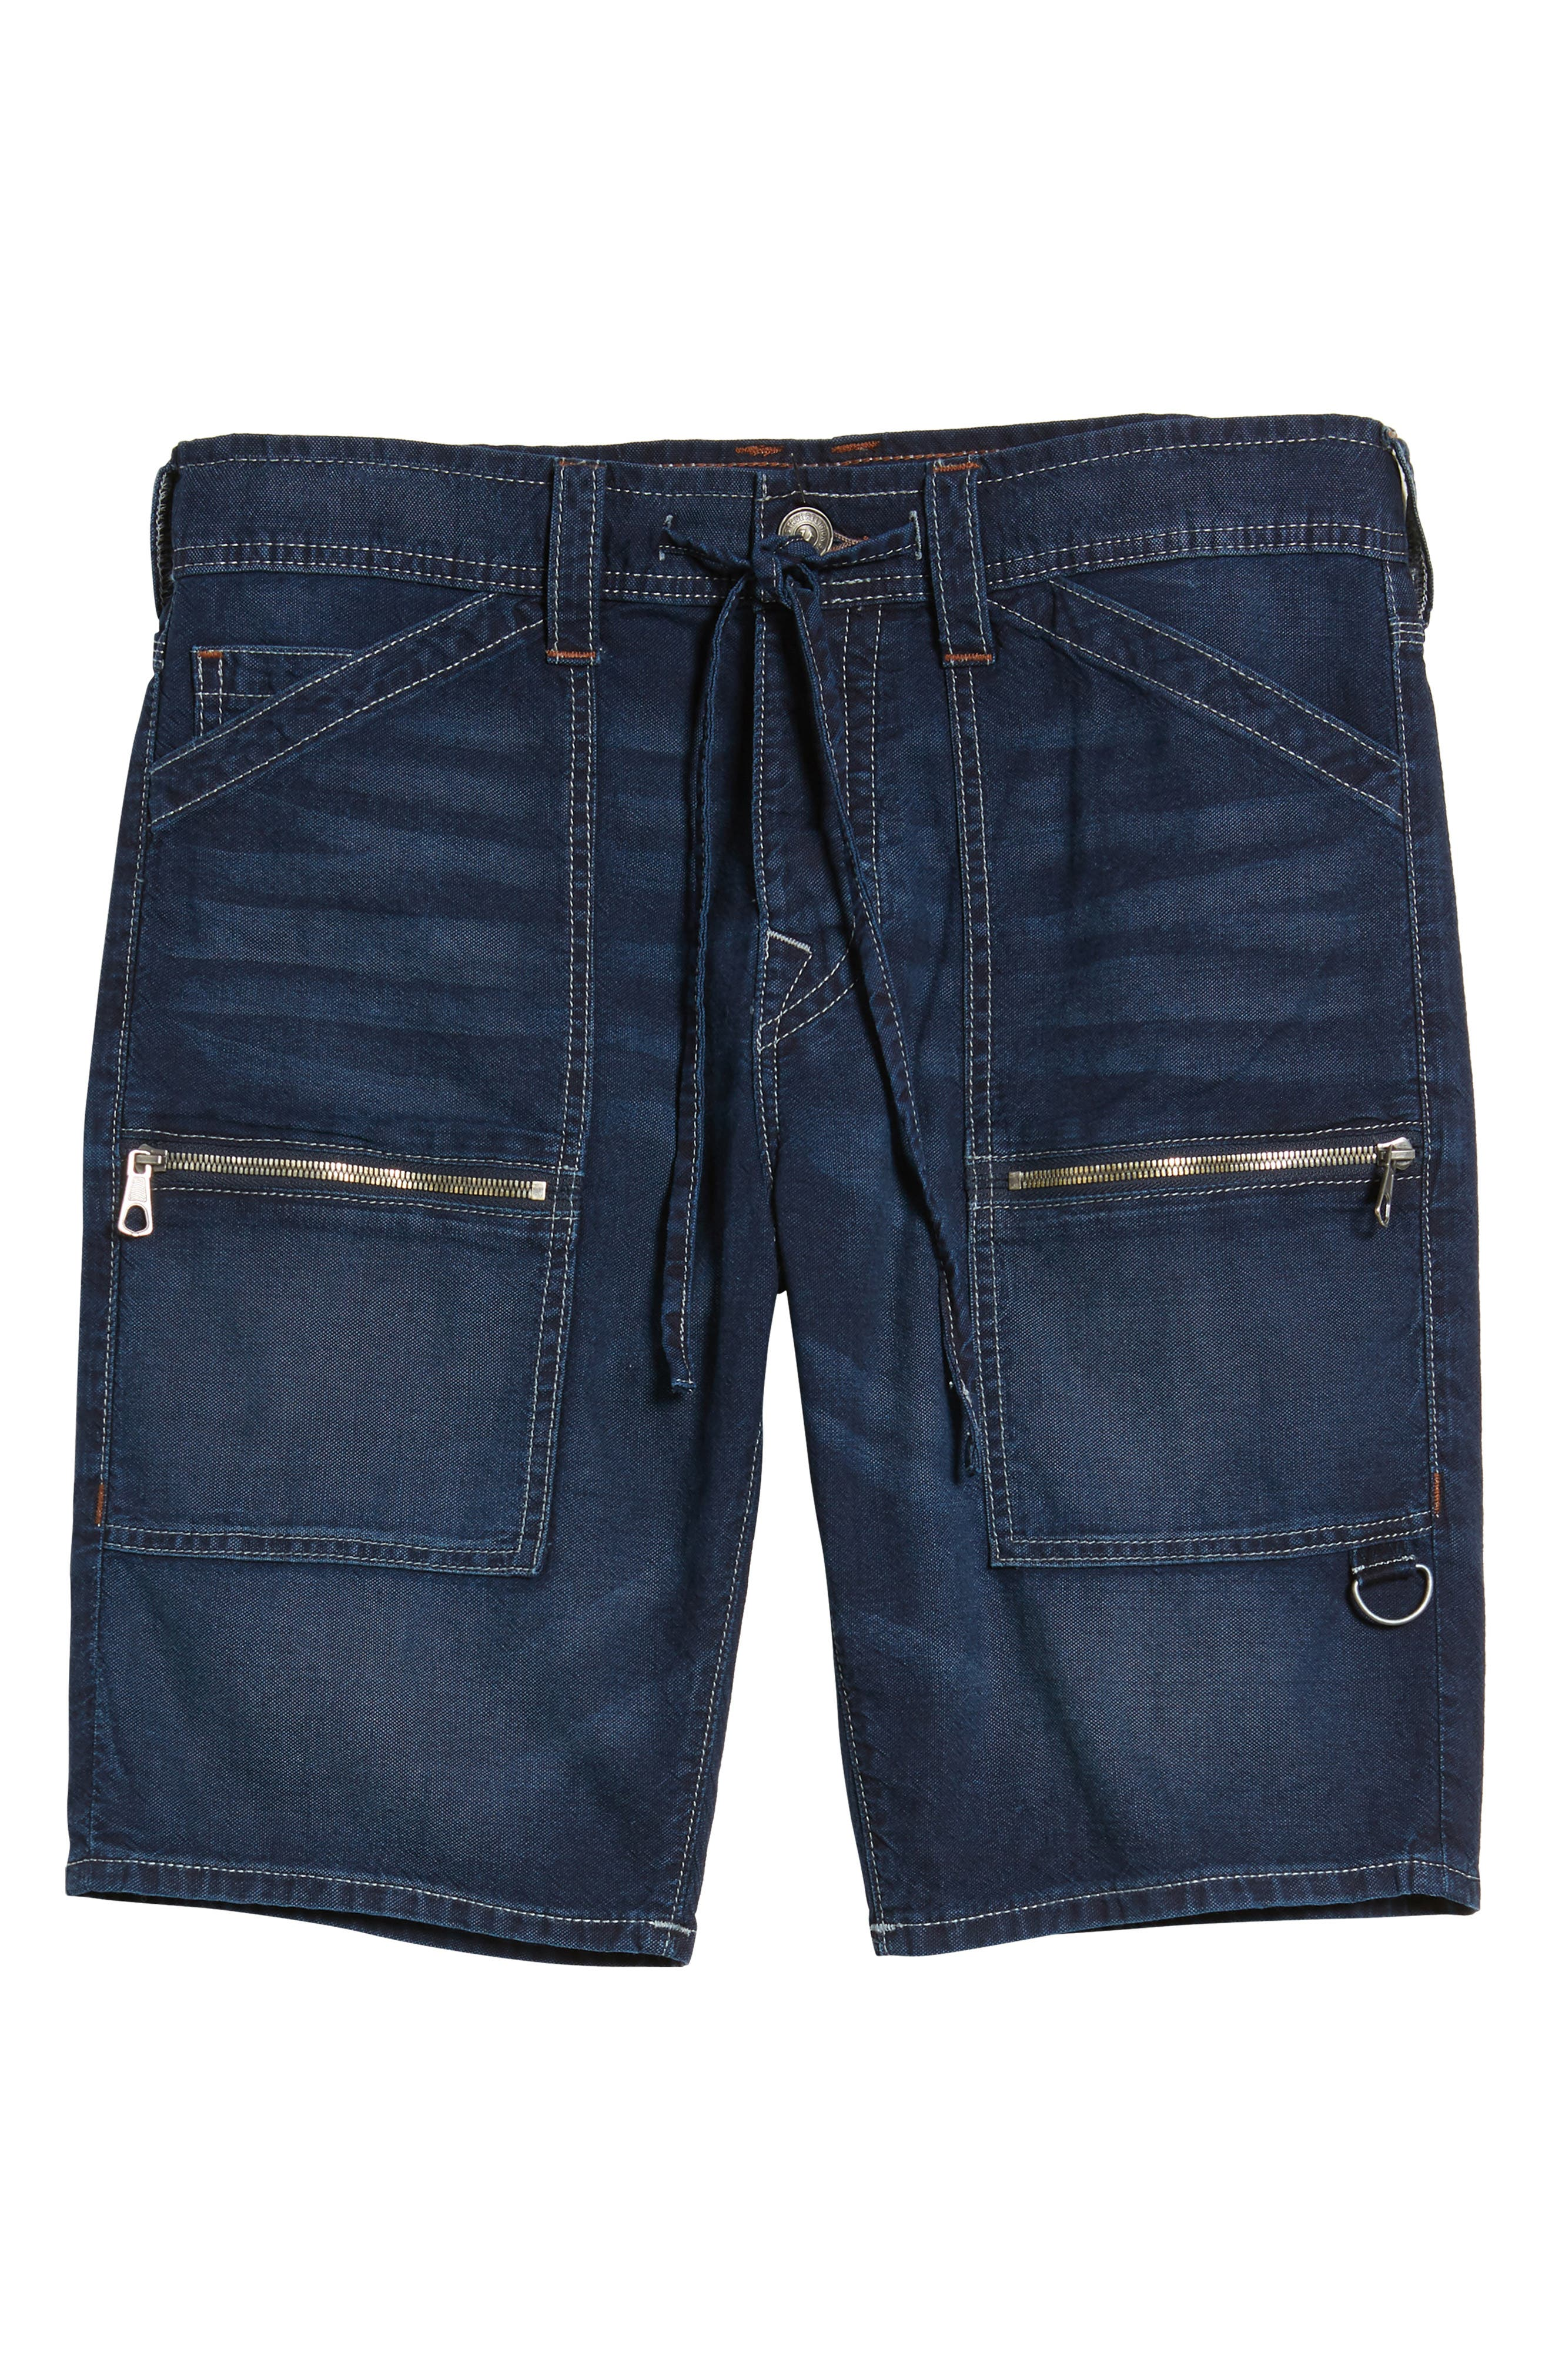 Trail Utility Shorts,                             Alternate thumbnail 6, color,                             UNION SPECIAL